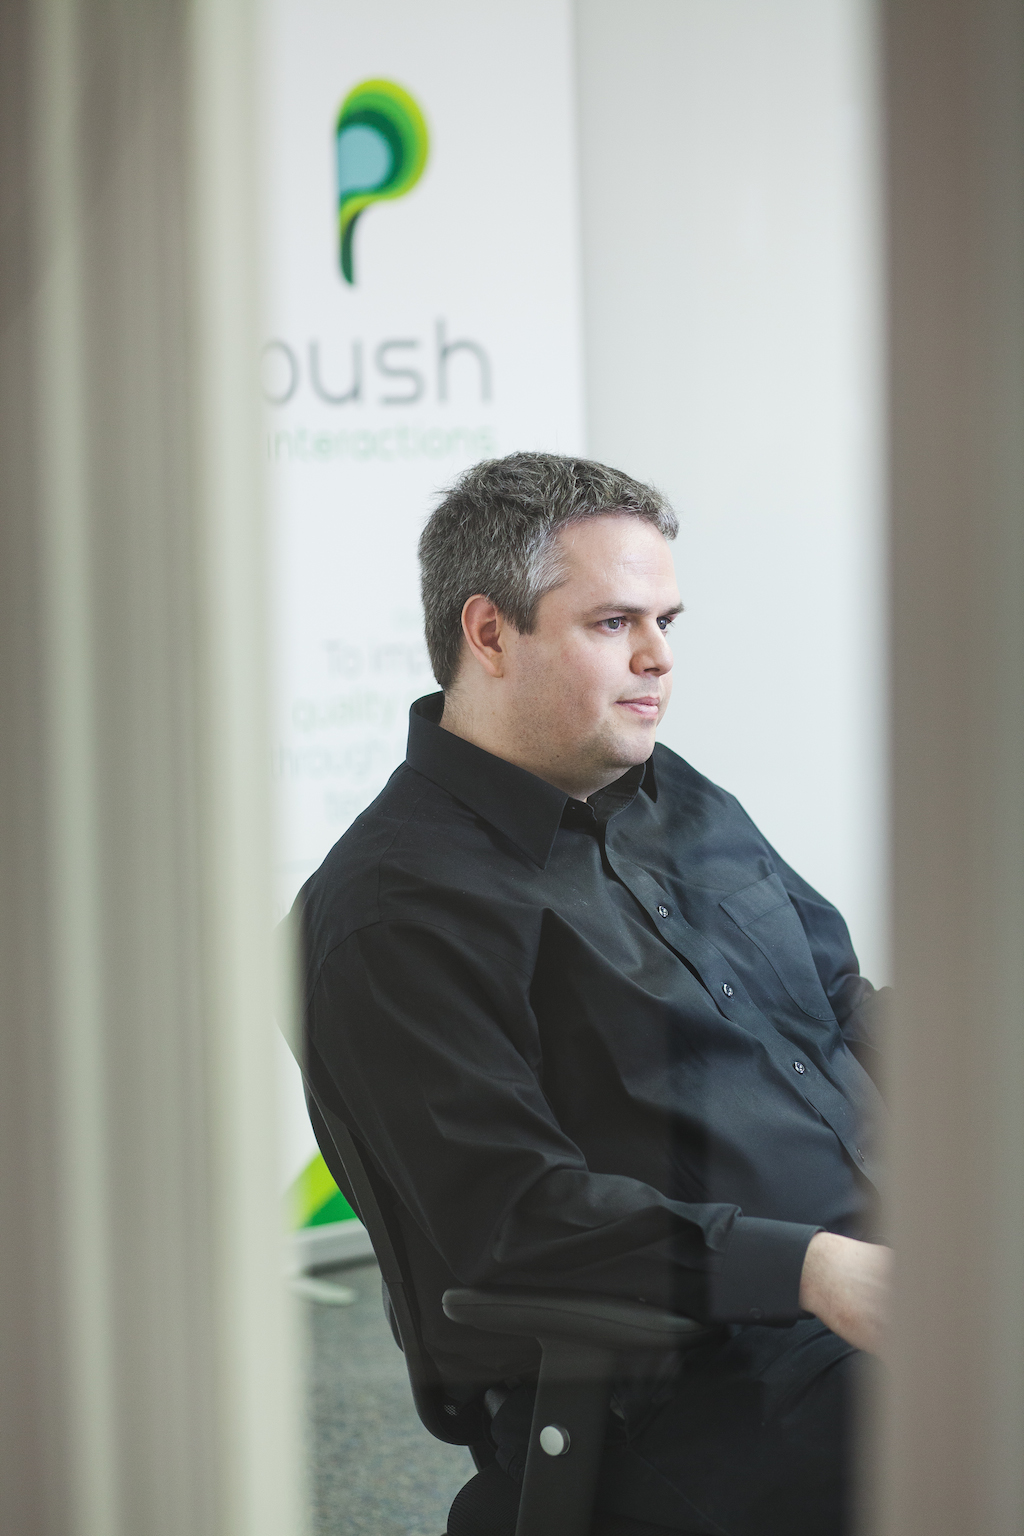 Meet Our Team - Chad Jones - Push Interactions CEO & Founder